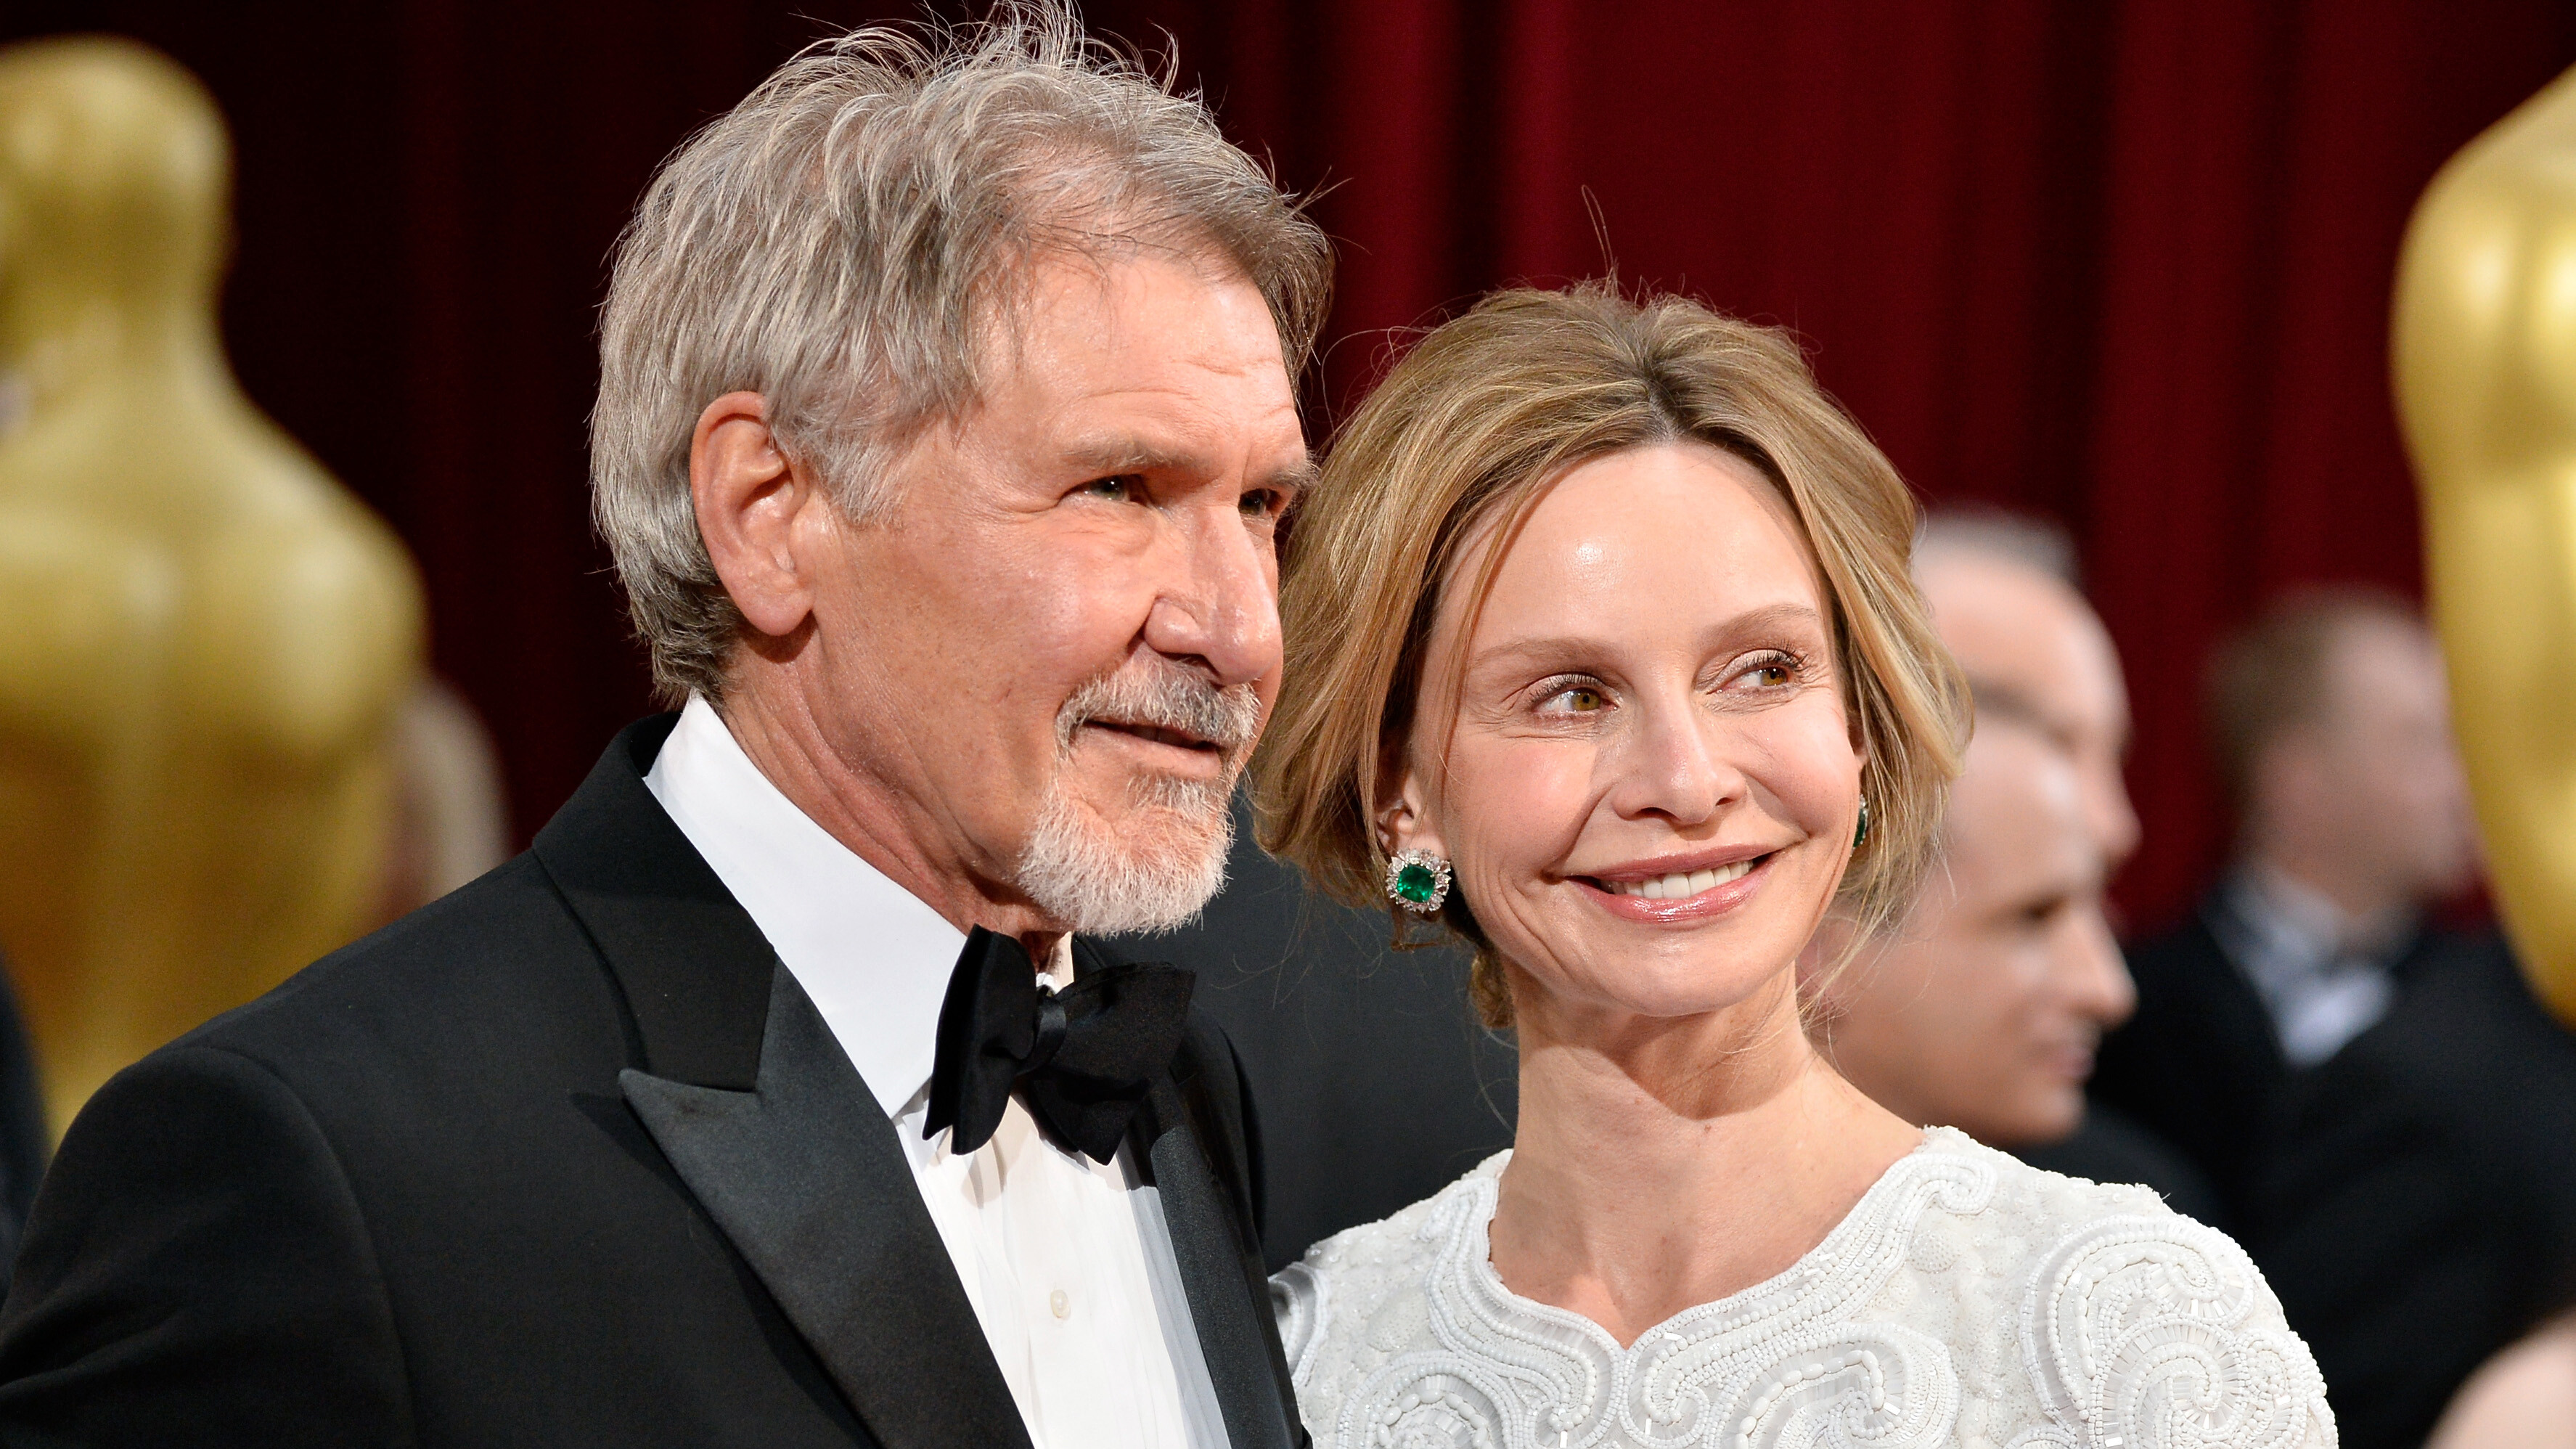 Harrison Ford spotted in rare appearance with wife Calista Flockhart